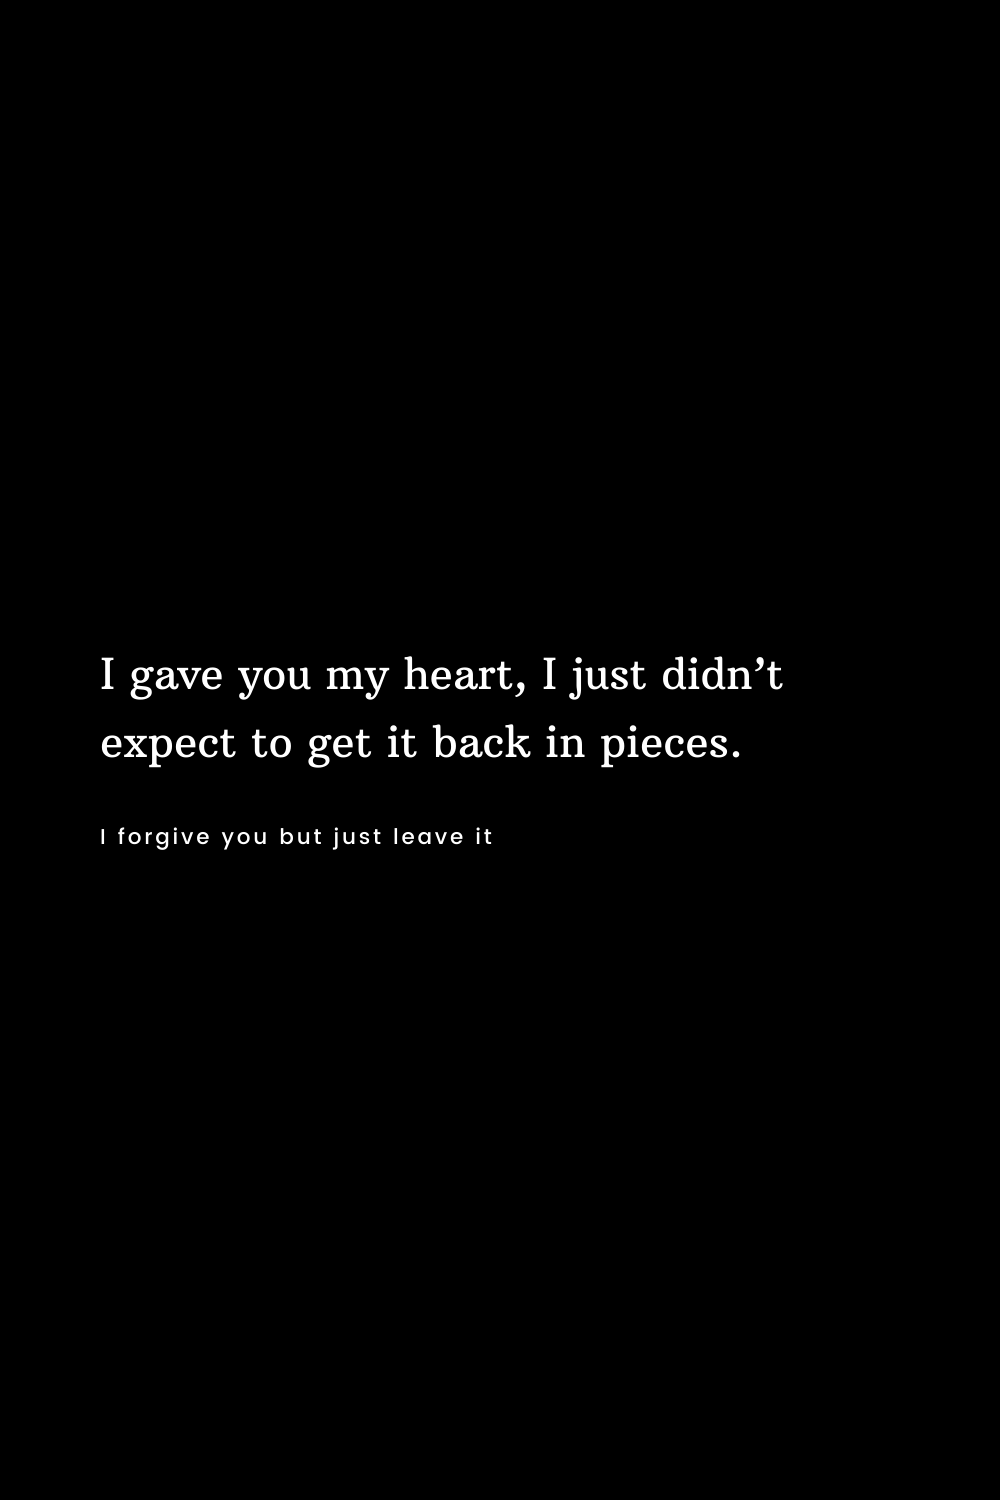 I gave you my heart, I just didn't expect to get it back in pieces.